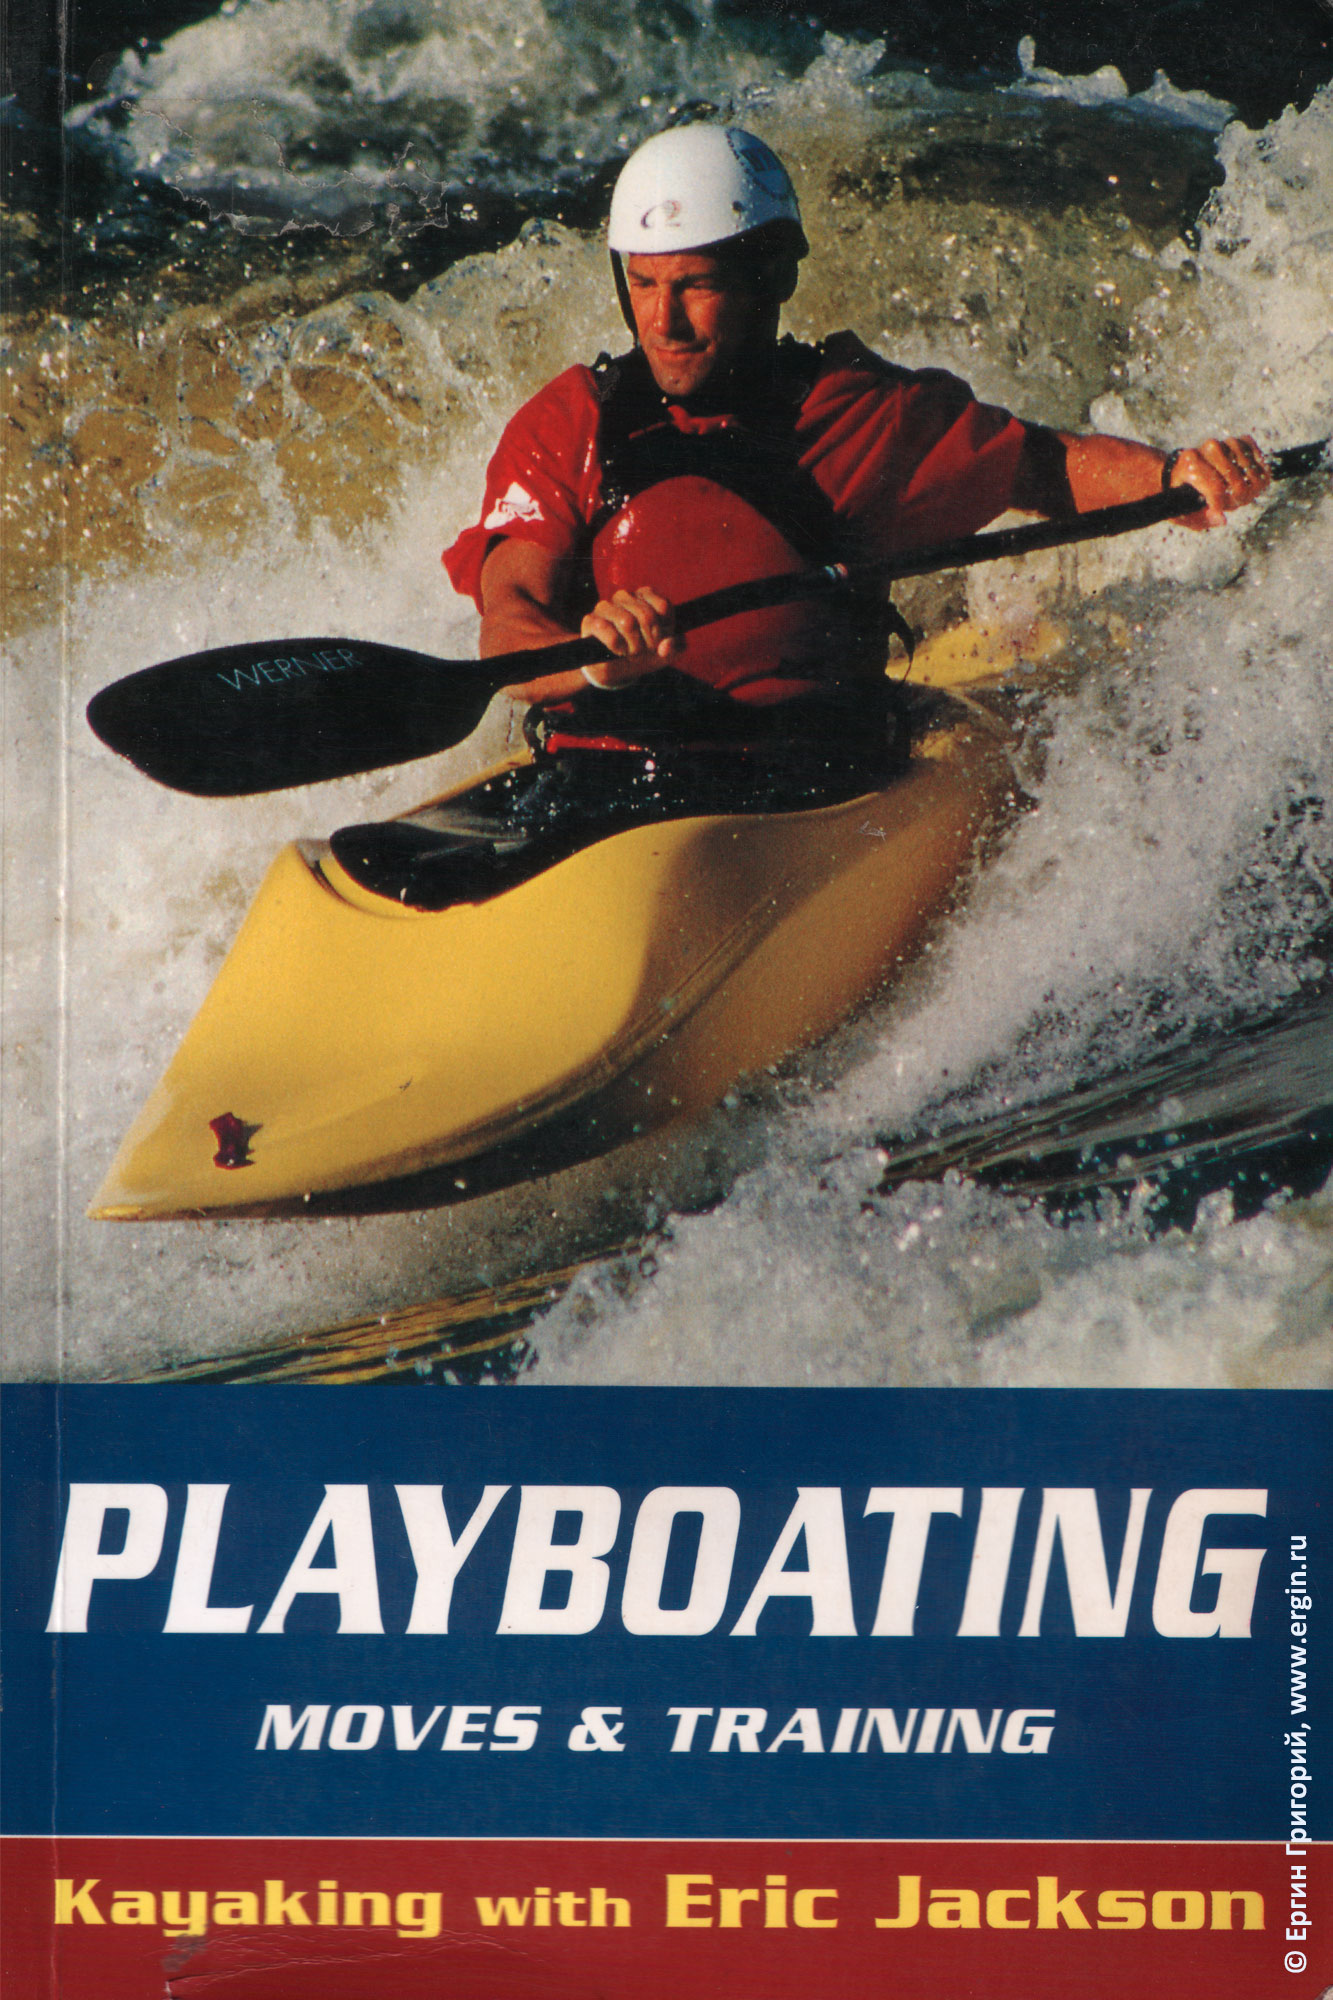 Эрик Джексон каякинг фристайл родео Playboating